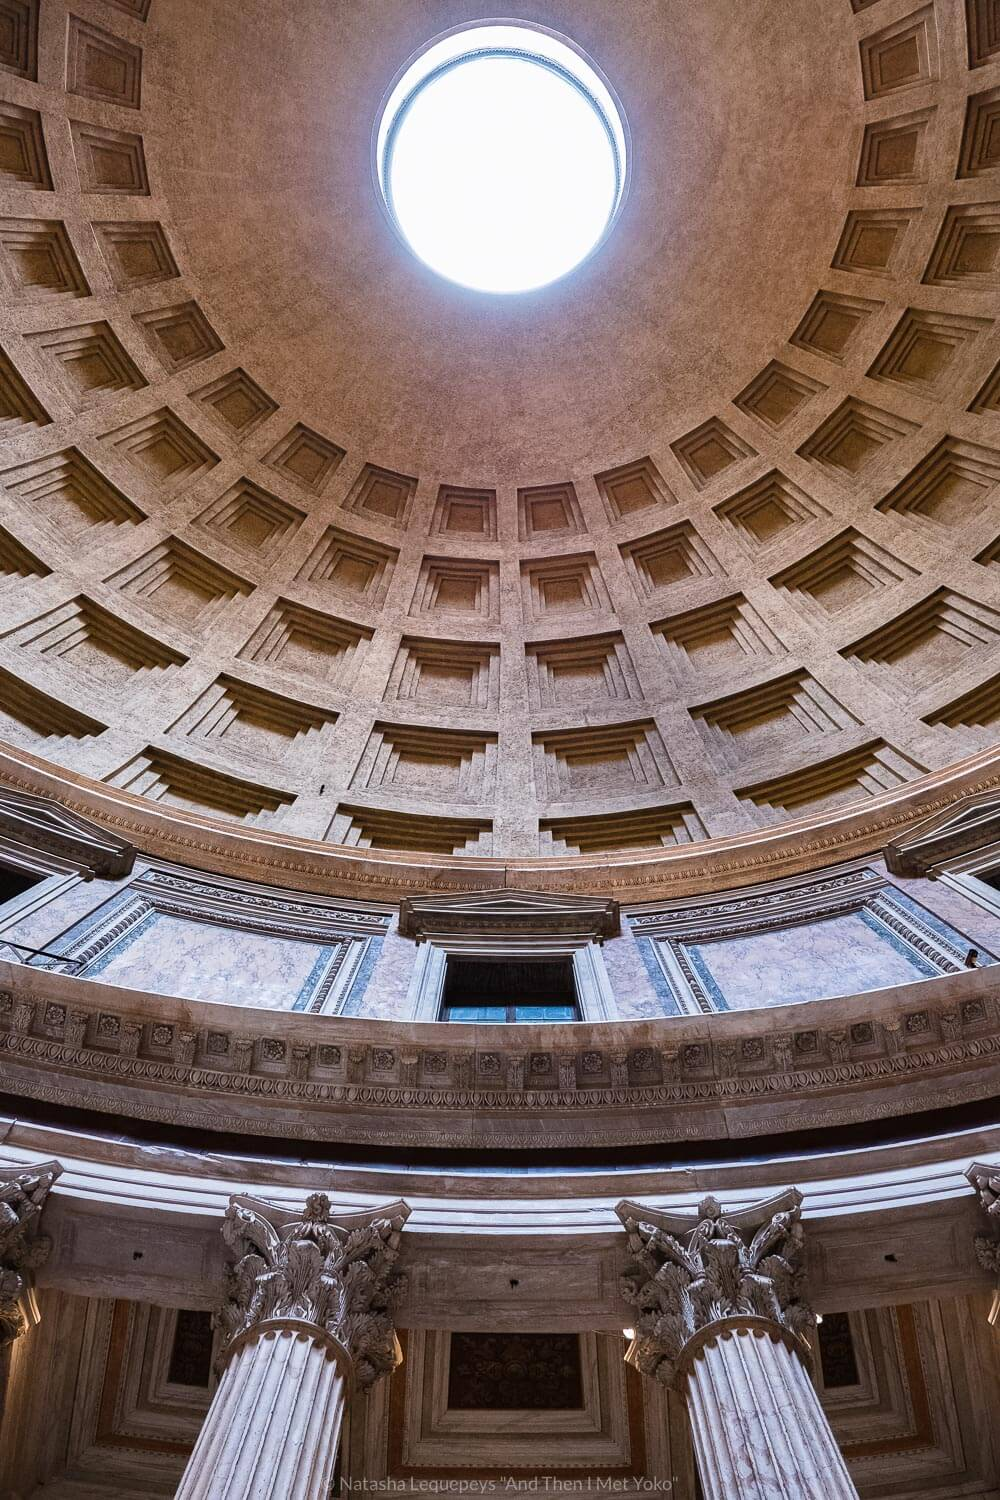 """The dome ceiling in the Pantheon in Rome, Italy. Travel photography and guide by © Natasha Lequepeys for """"And Then I Met Yoko"""". #rome #italy #travelblog #travelphotography"""